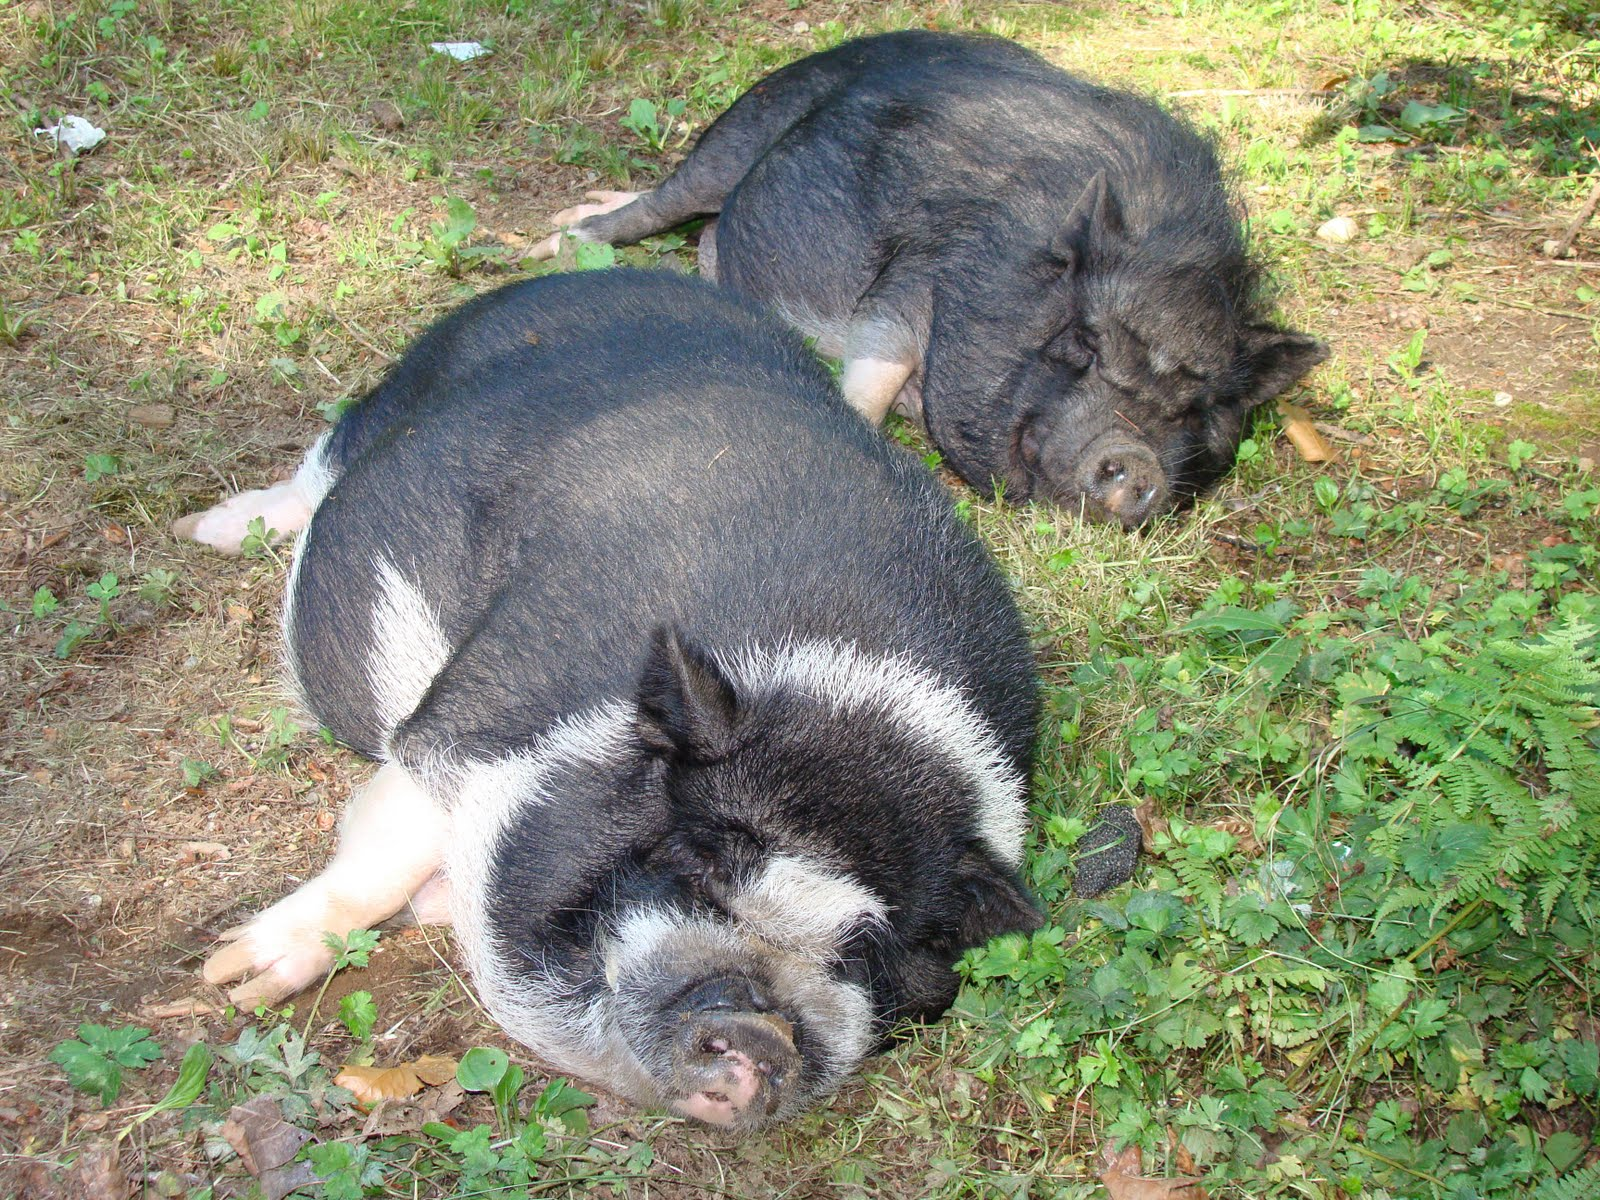 Teacup Potbelly Pigs Full Grown